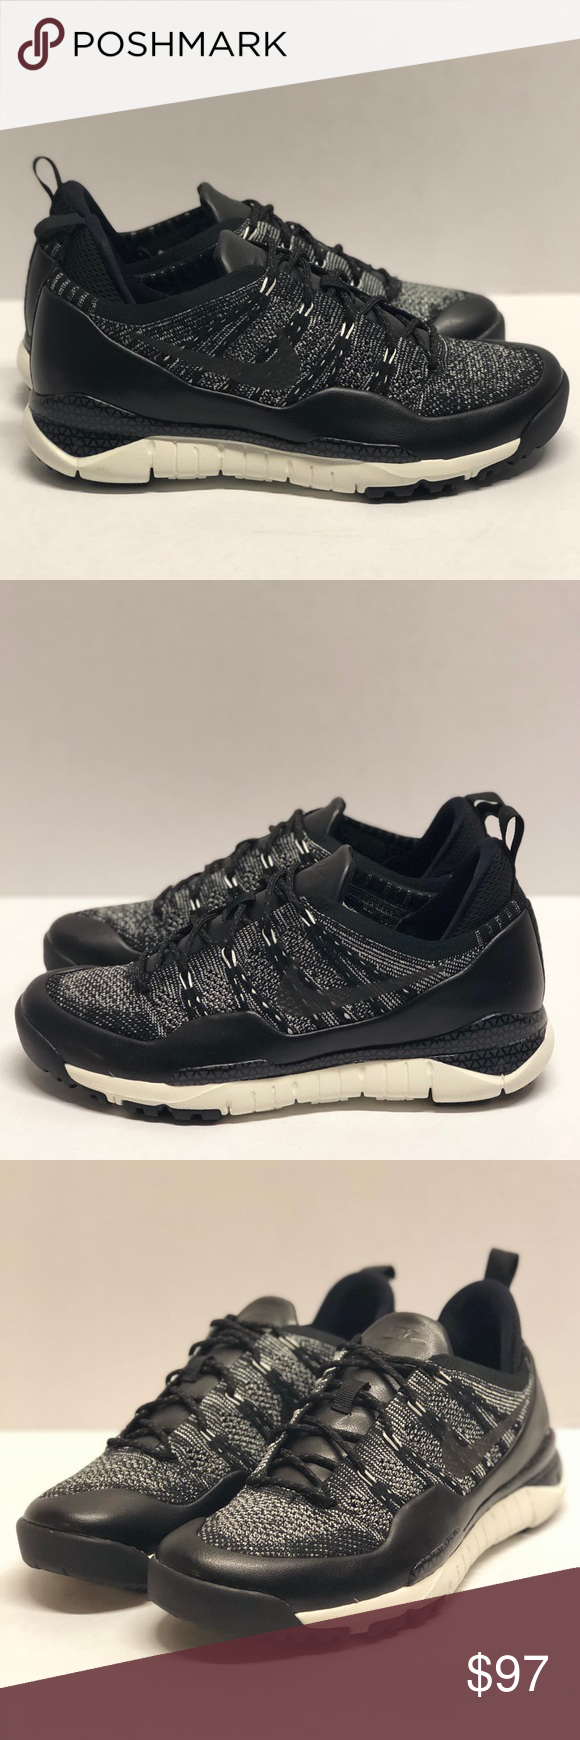 4620a92cdaef7 Nike Mens Lupinek Flyknit Low Sz 9 Oreo boots Brand New condition